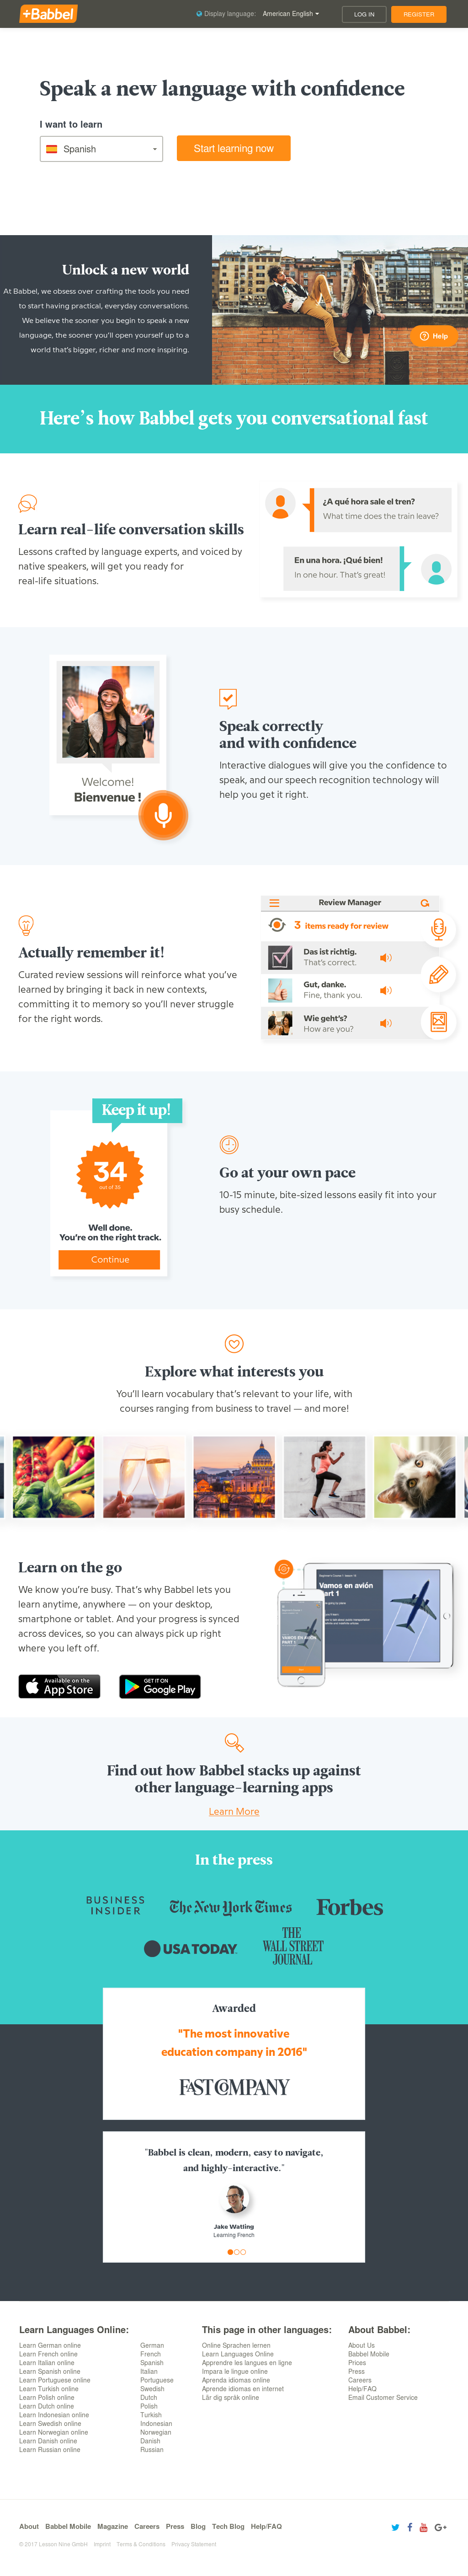 Babbel Competitors, Revenue and Employees - Owler Company